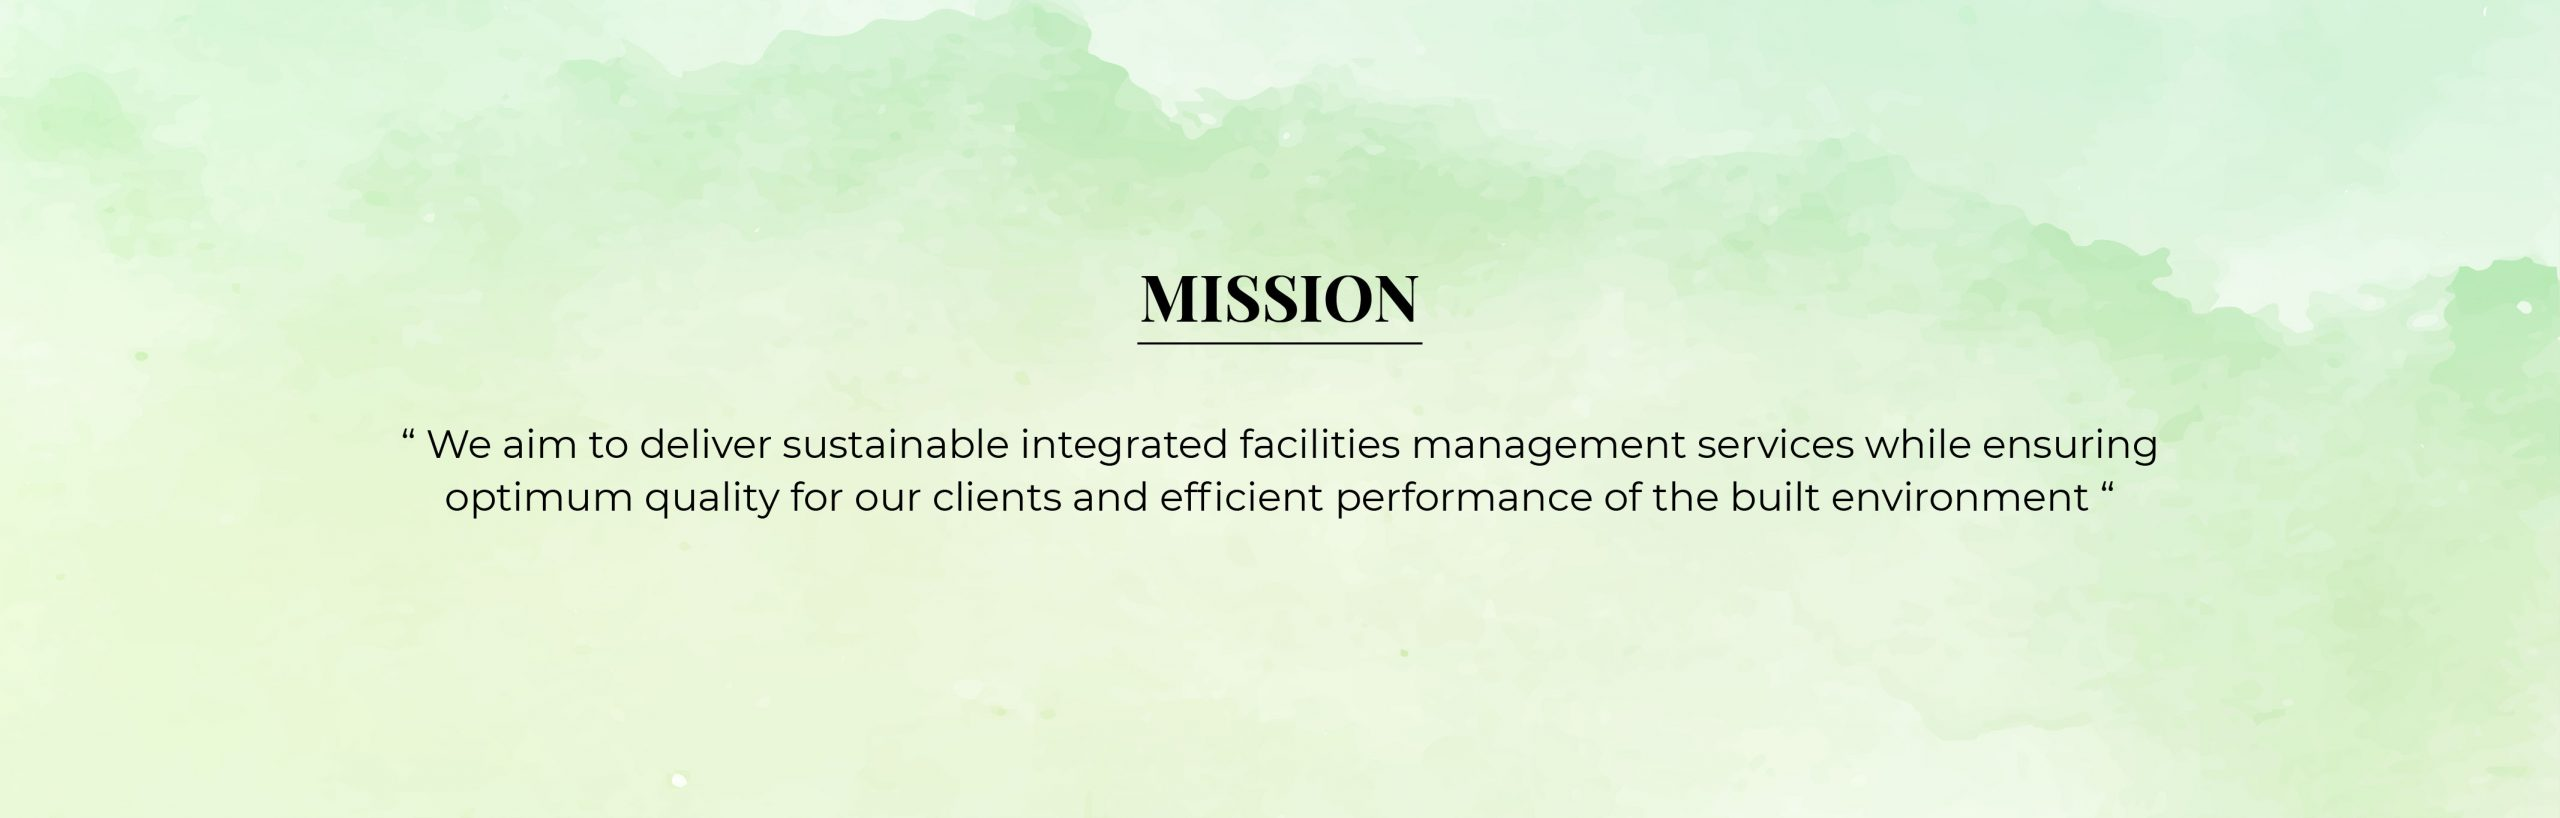 Mission - we aim to deliver sustainable integrated facilities management services while ensuring optimum quality for our clients and efficient performance of the built environment